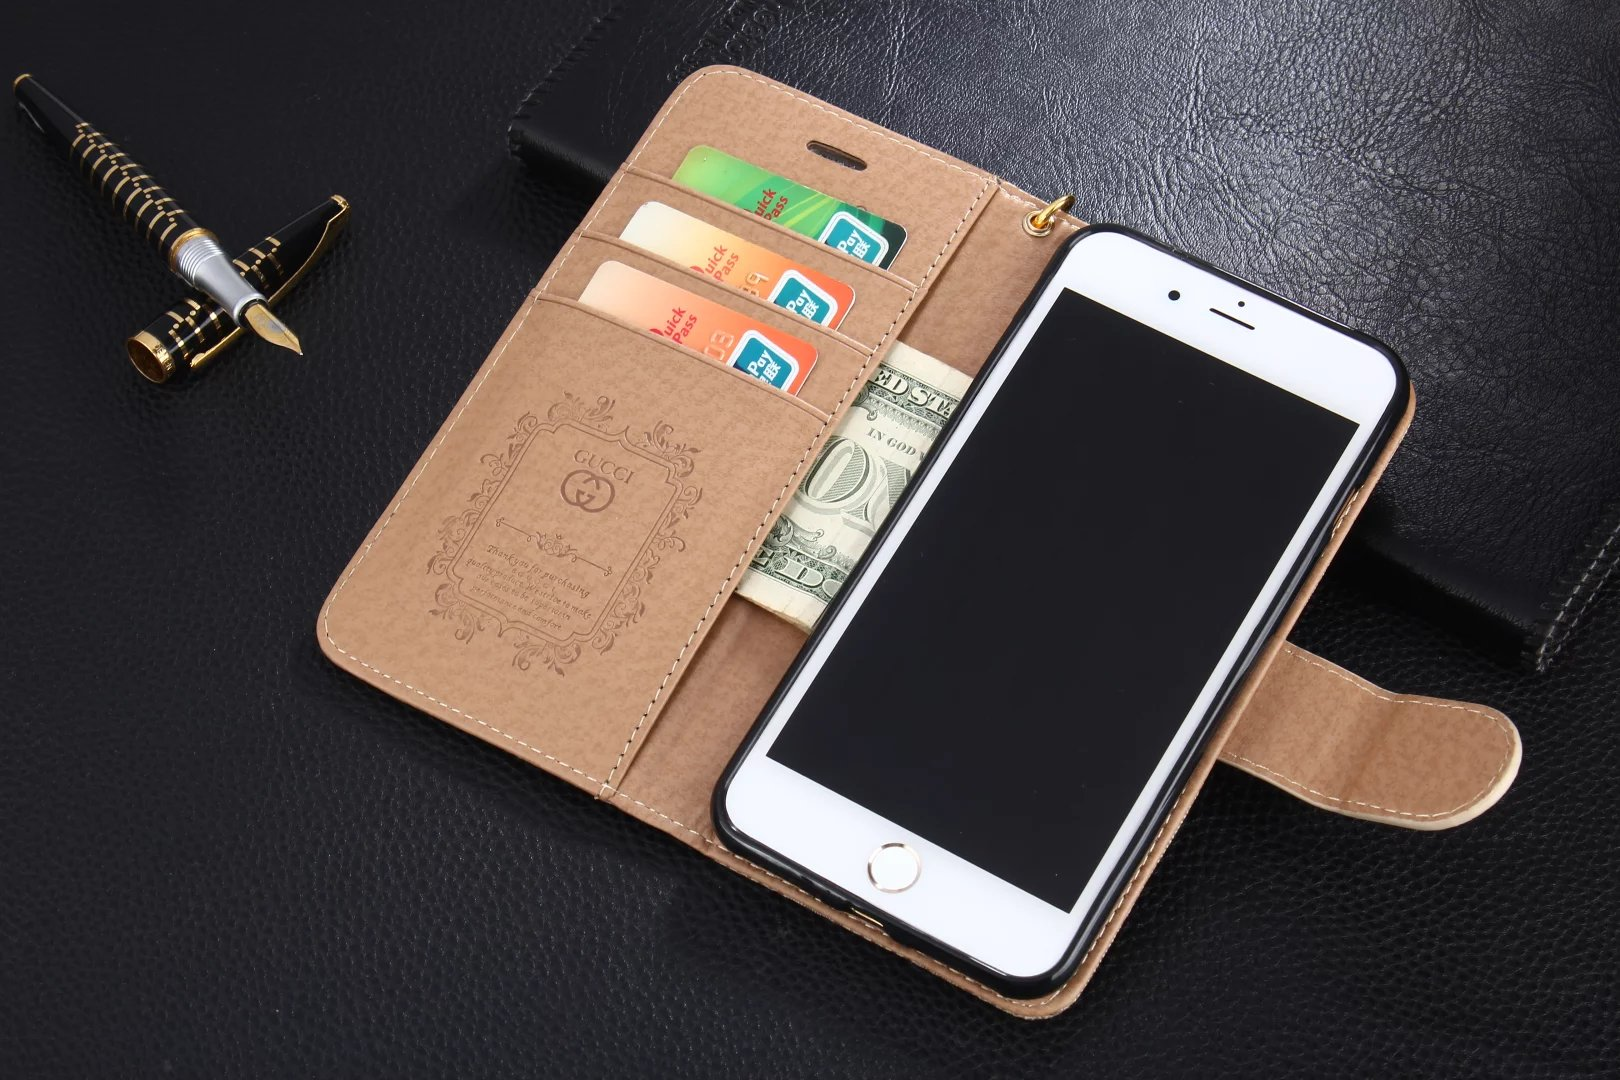 best iphone 6 Plus covers best iphone 6 Plus case brands fashion iphone6 plus case make an iphone case mophie reviews iphone 6 custom case phone mophie iphone 6 juice pack iphone 6 case designer what is a mophie juice pack